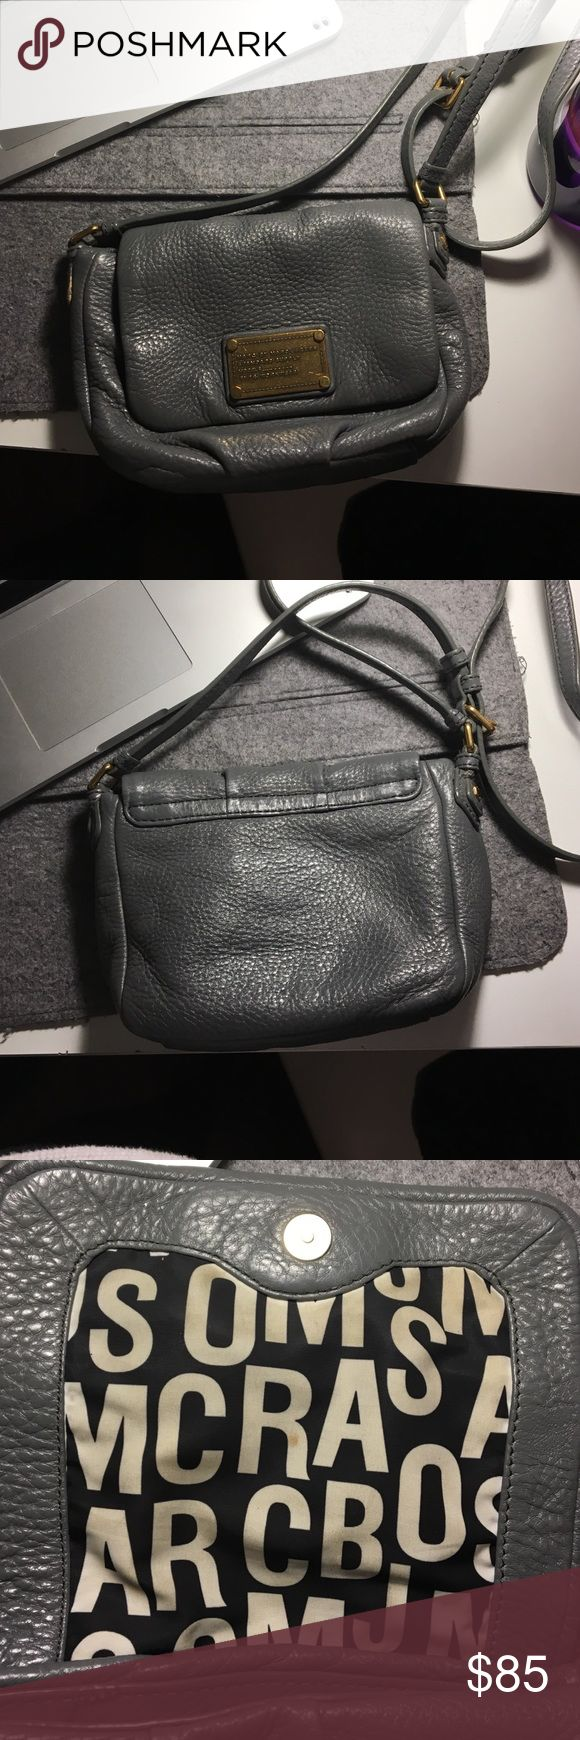 SALE Marc by Marc Jacobs bag Grey mini Marc by Marc Jacobs bag Marc by Marc Jacobs Bags Crossbody Bags